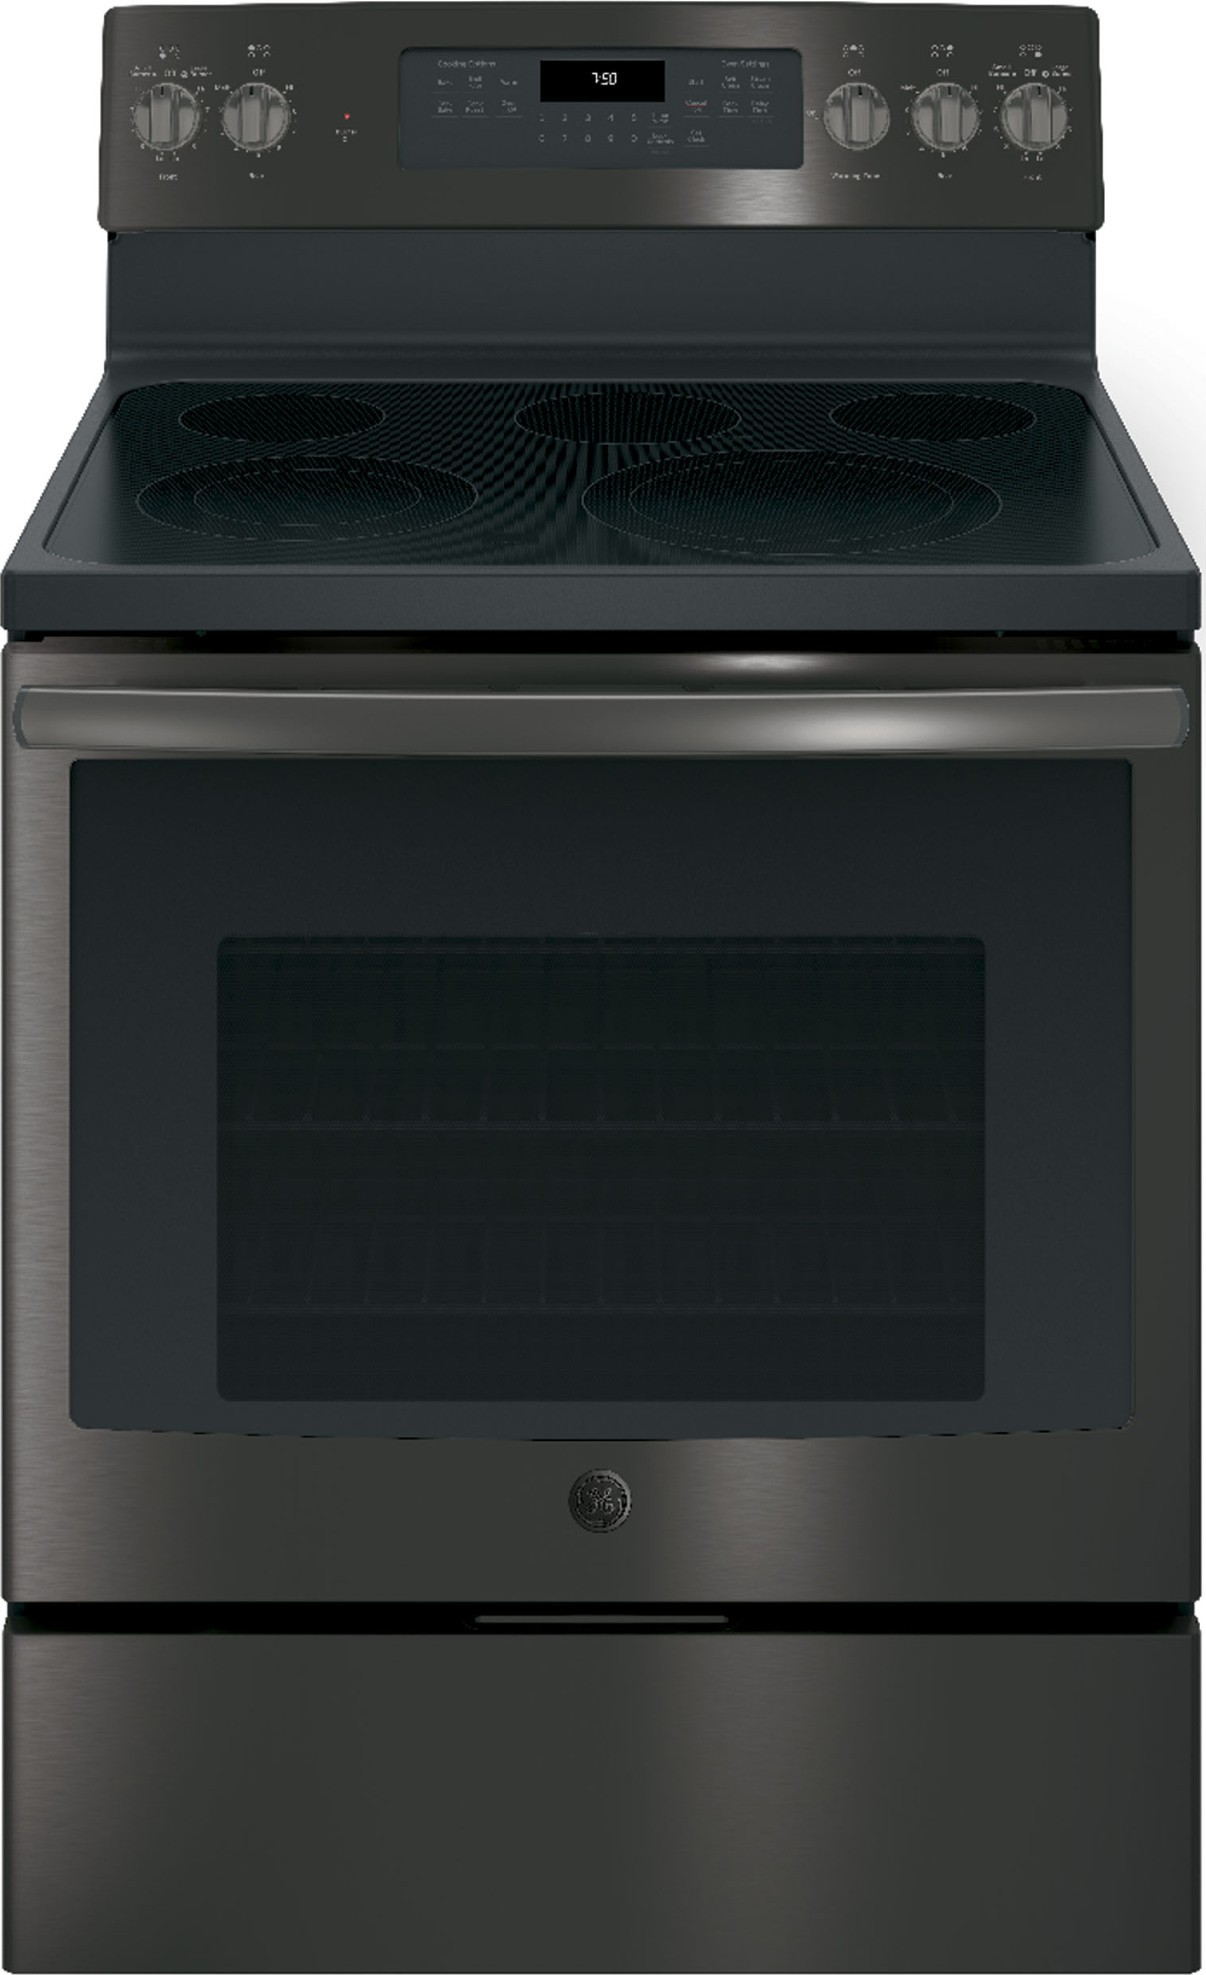 Jb750bjts Ge 30 Quot Convection Electric Range Steam Self